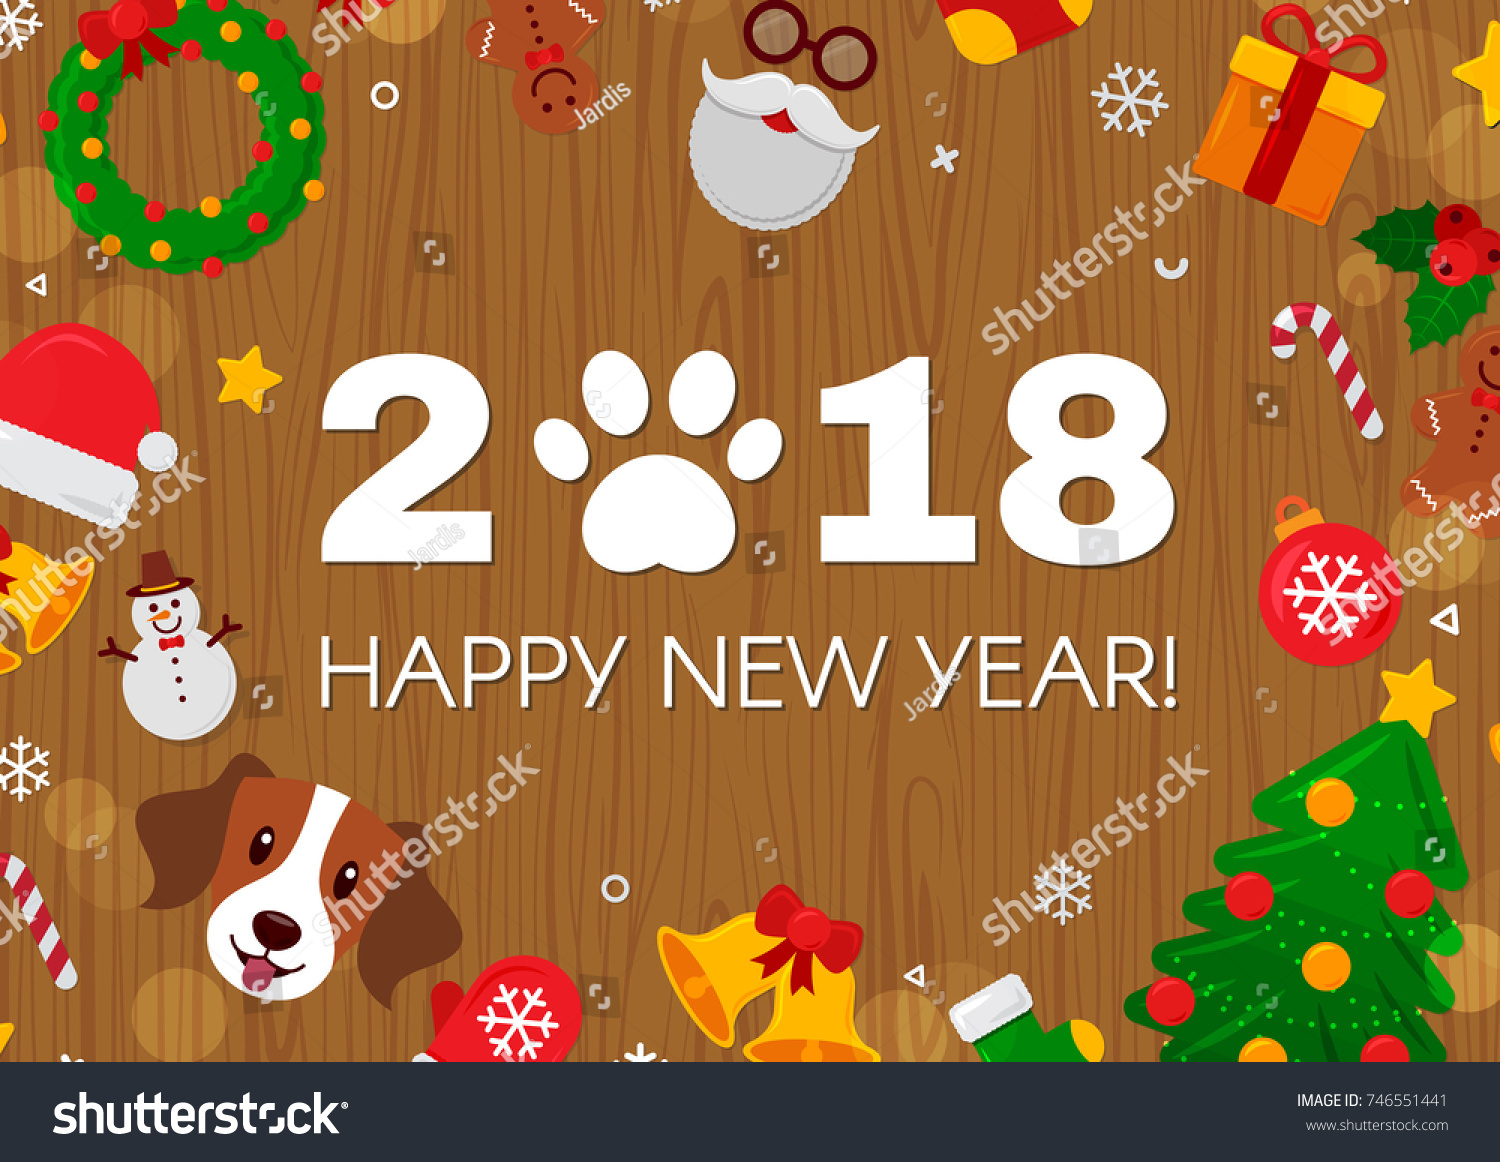 2018 happy new year greeting card with numbersdog paw print and flat icons stickers